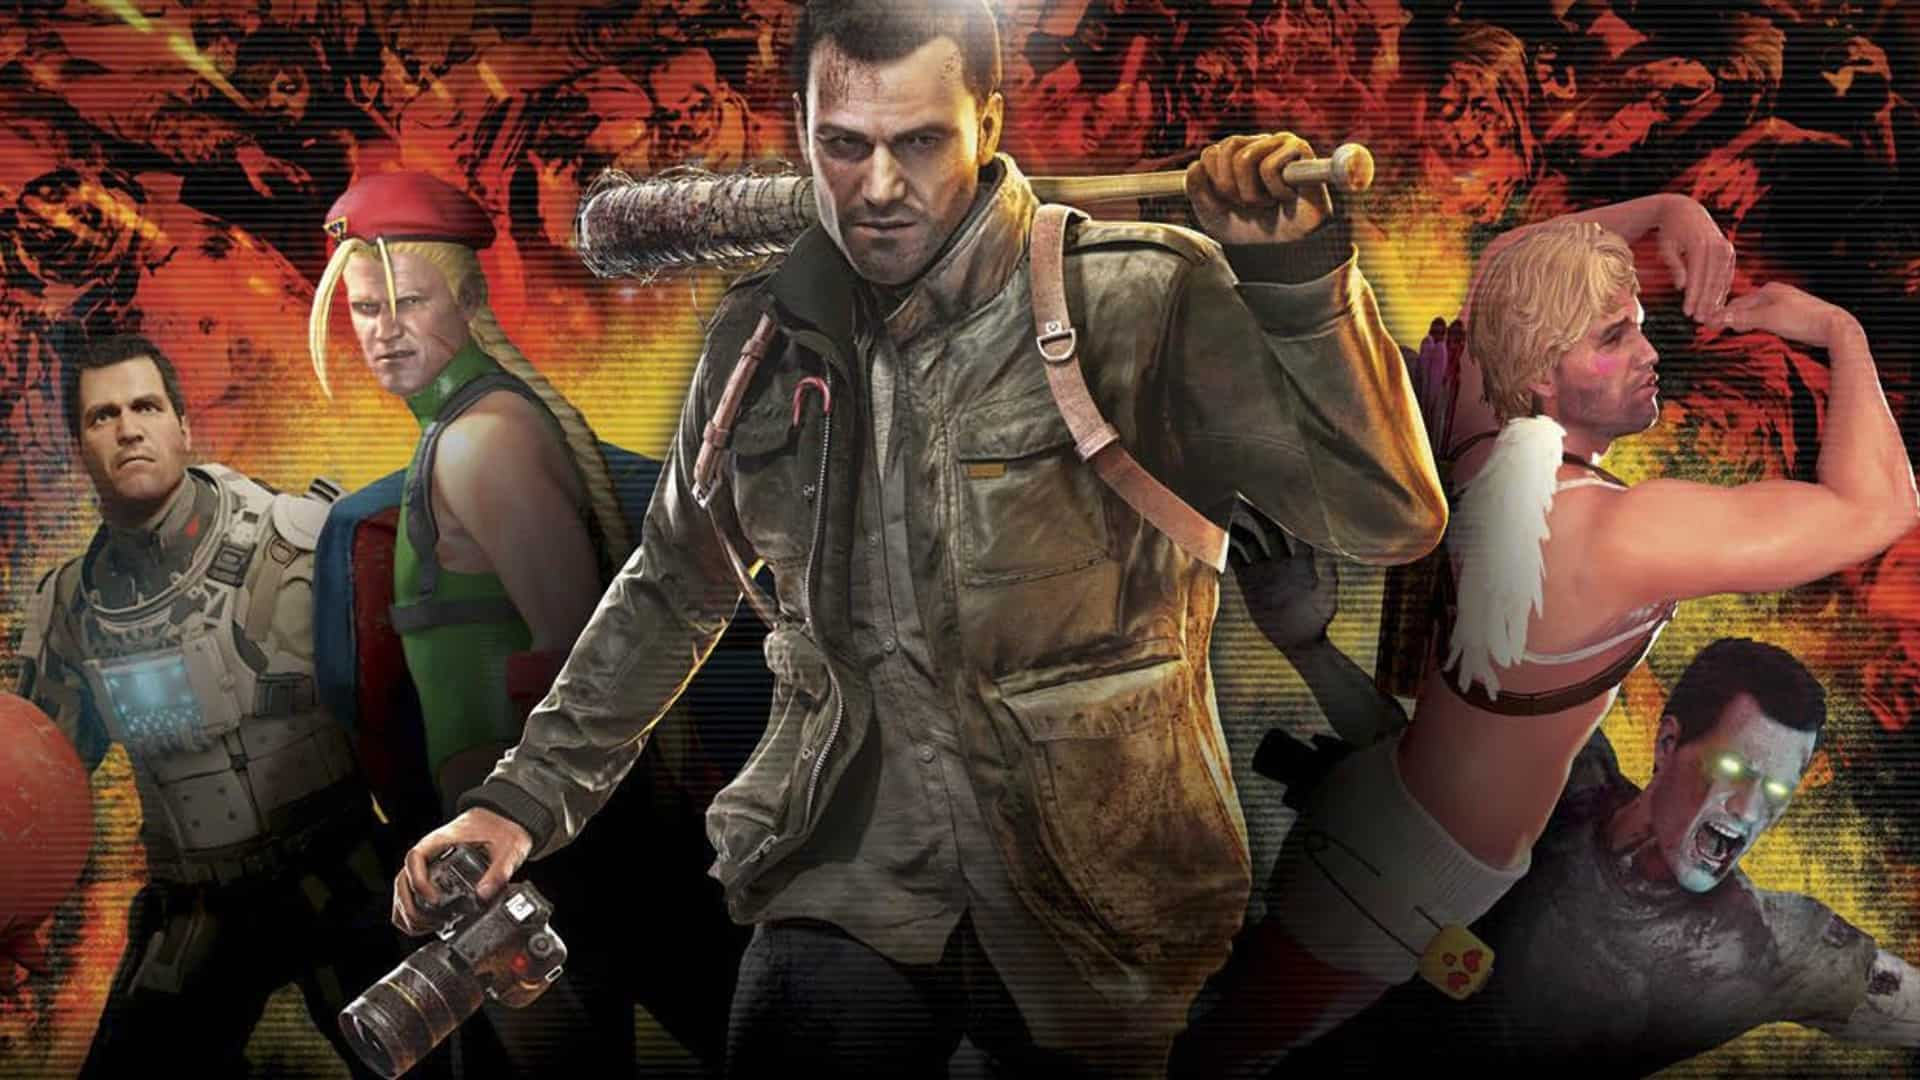 Dead Rising 4 Franks Big Package Is Not A Misnomer Review Playstation Frank West Returns In To Yet Another Zombie Infested Mall During Christmas Season He Feels Older And Wiser This Time Around When I Say